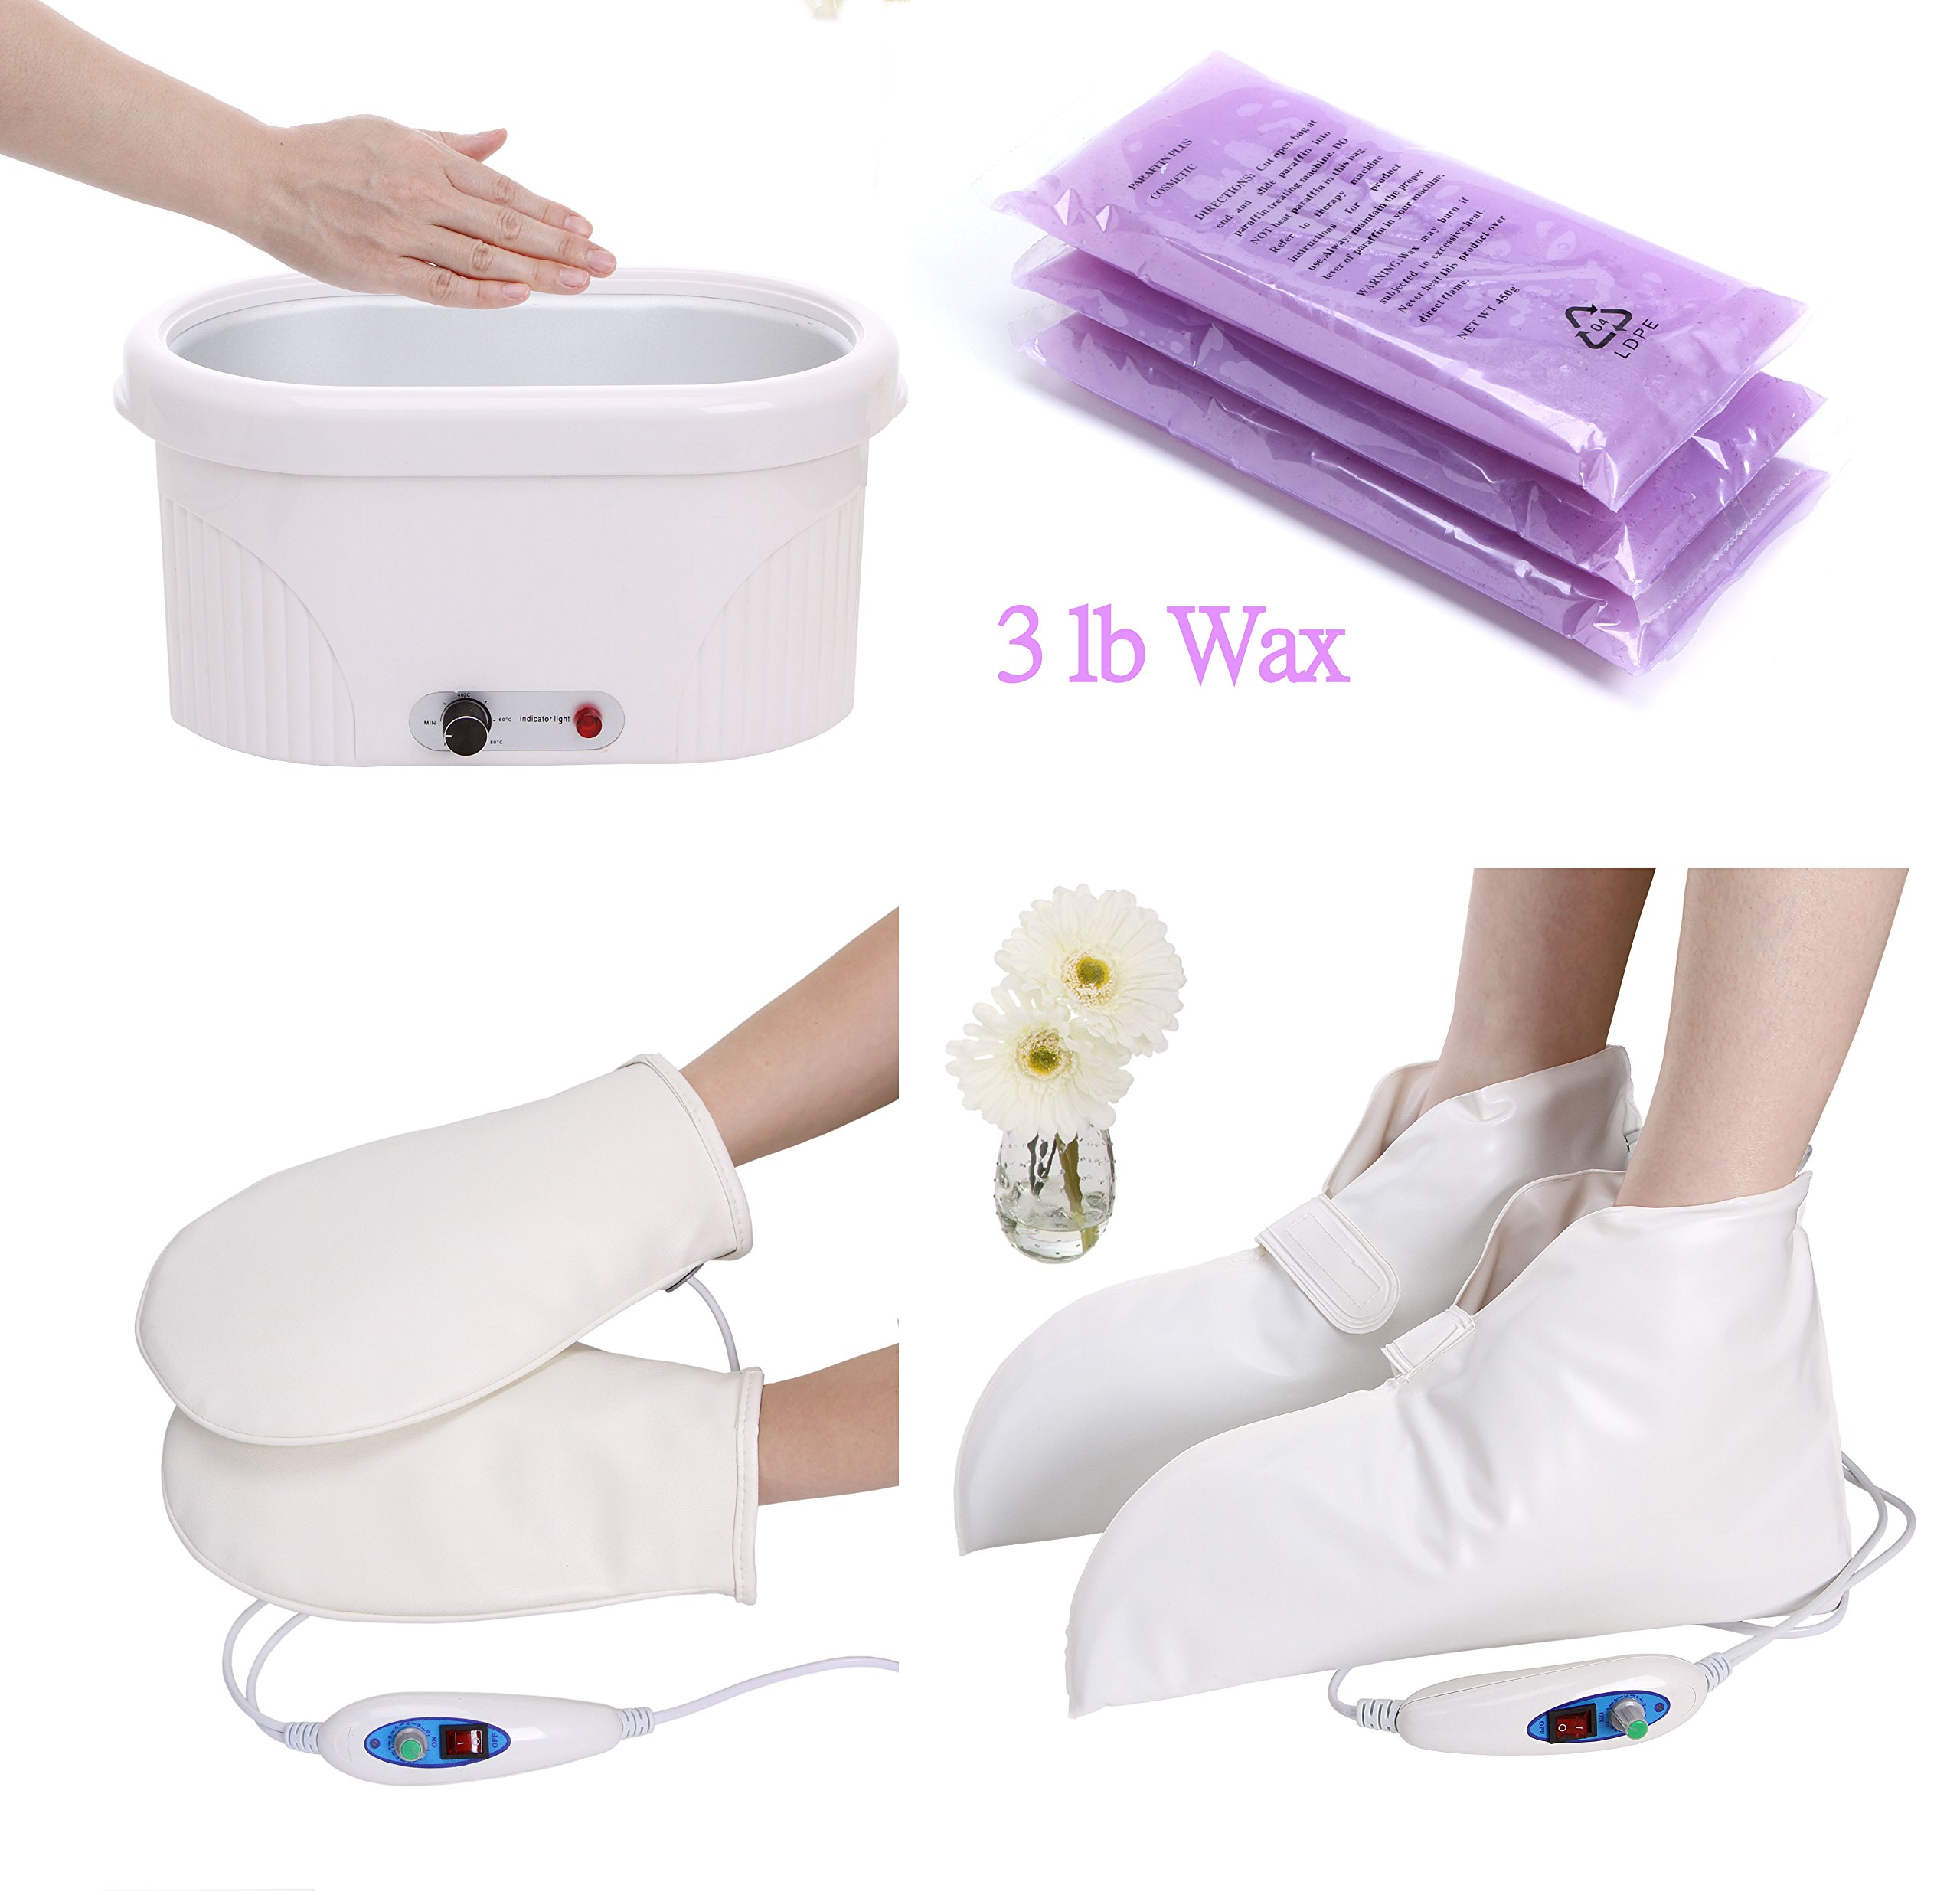 Wax Pedicure and Manicure Machine for Feet and Hands, with Heated Electrical Booties and Gloves for Continuous Hydrating Heat Therapy TLC-5009GW